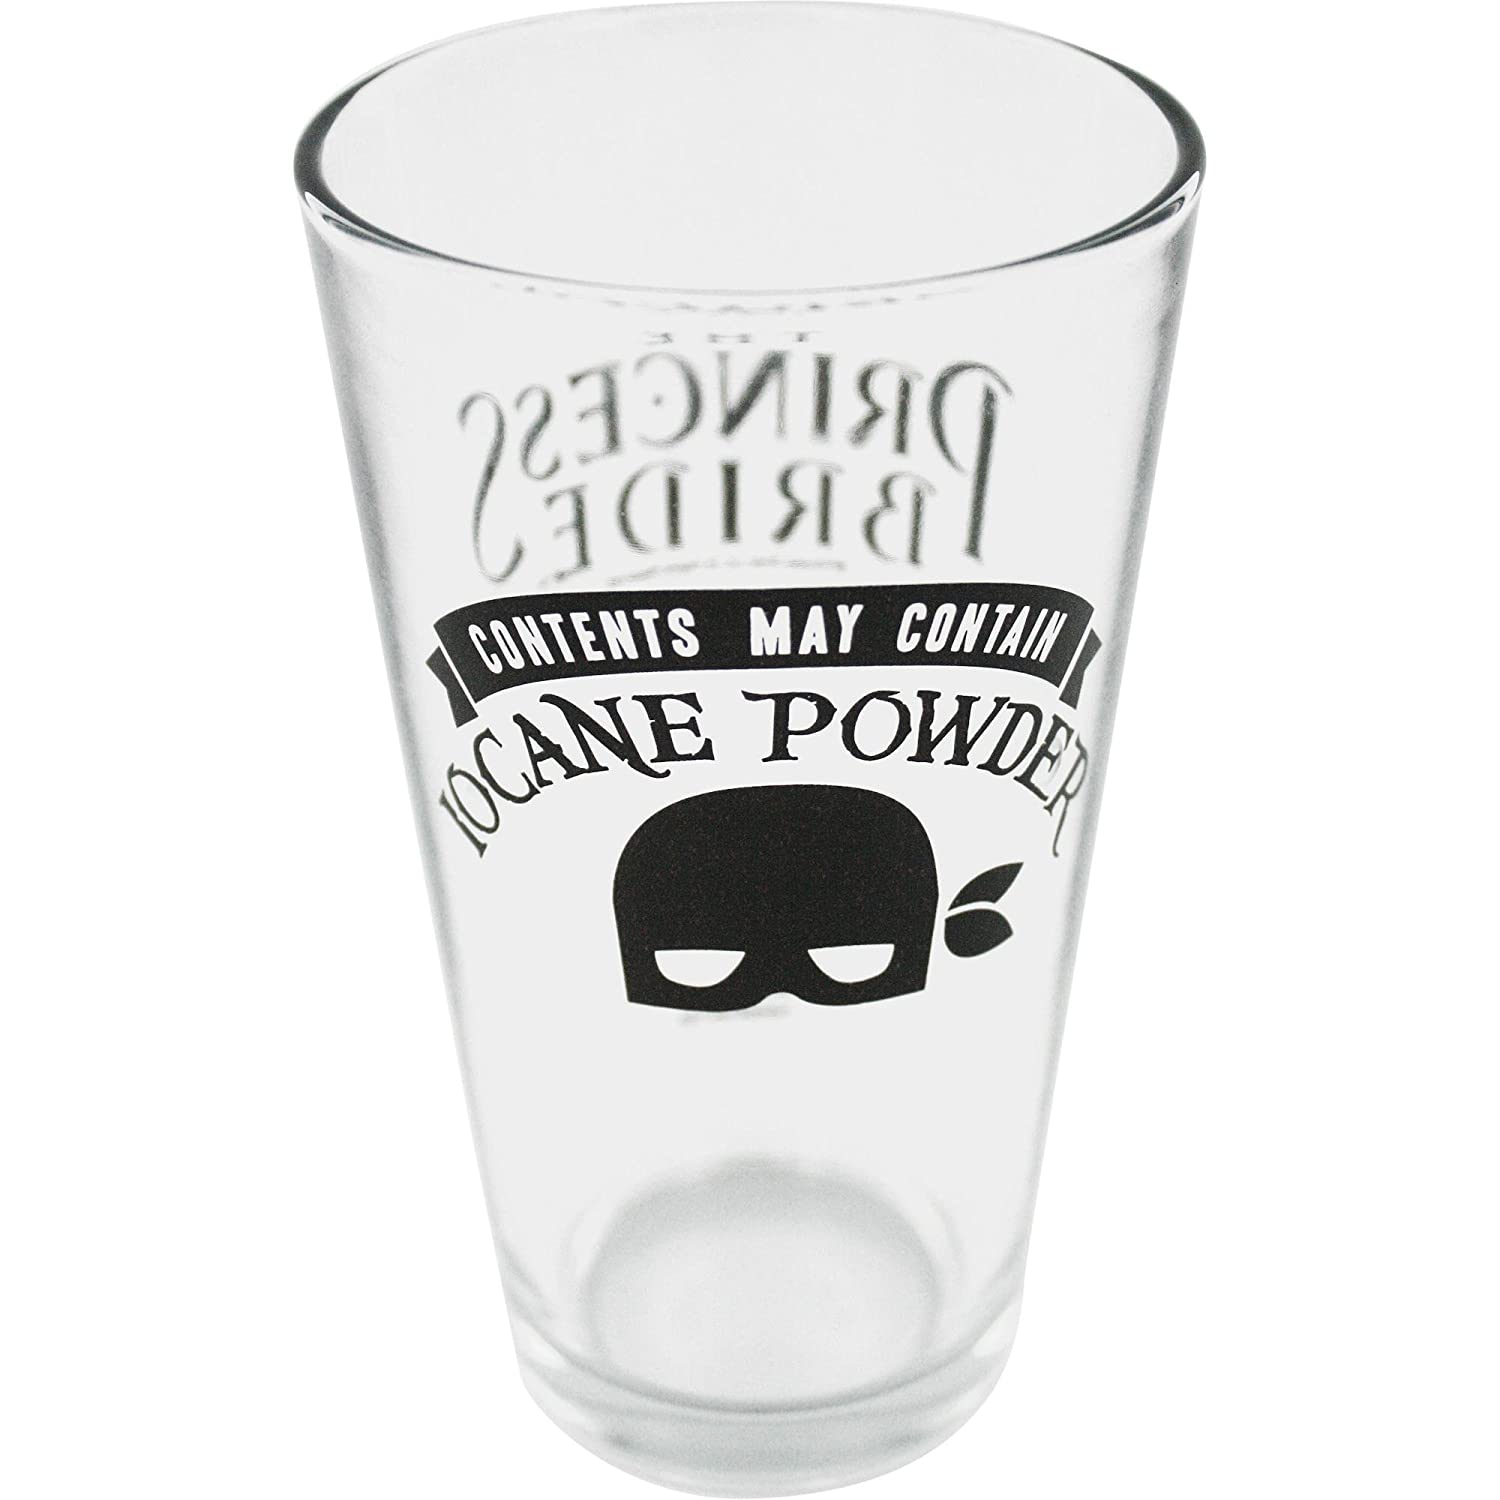 Princess Bride Iocane Powder Pint Glass Ripple Junction PBLG2050